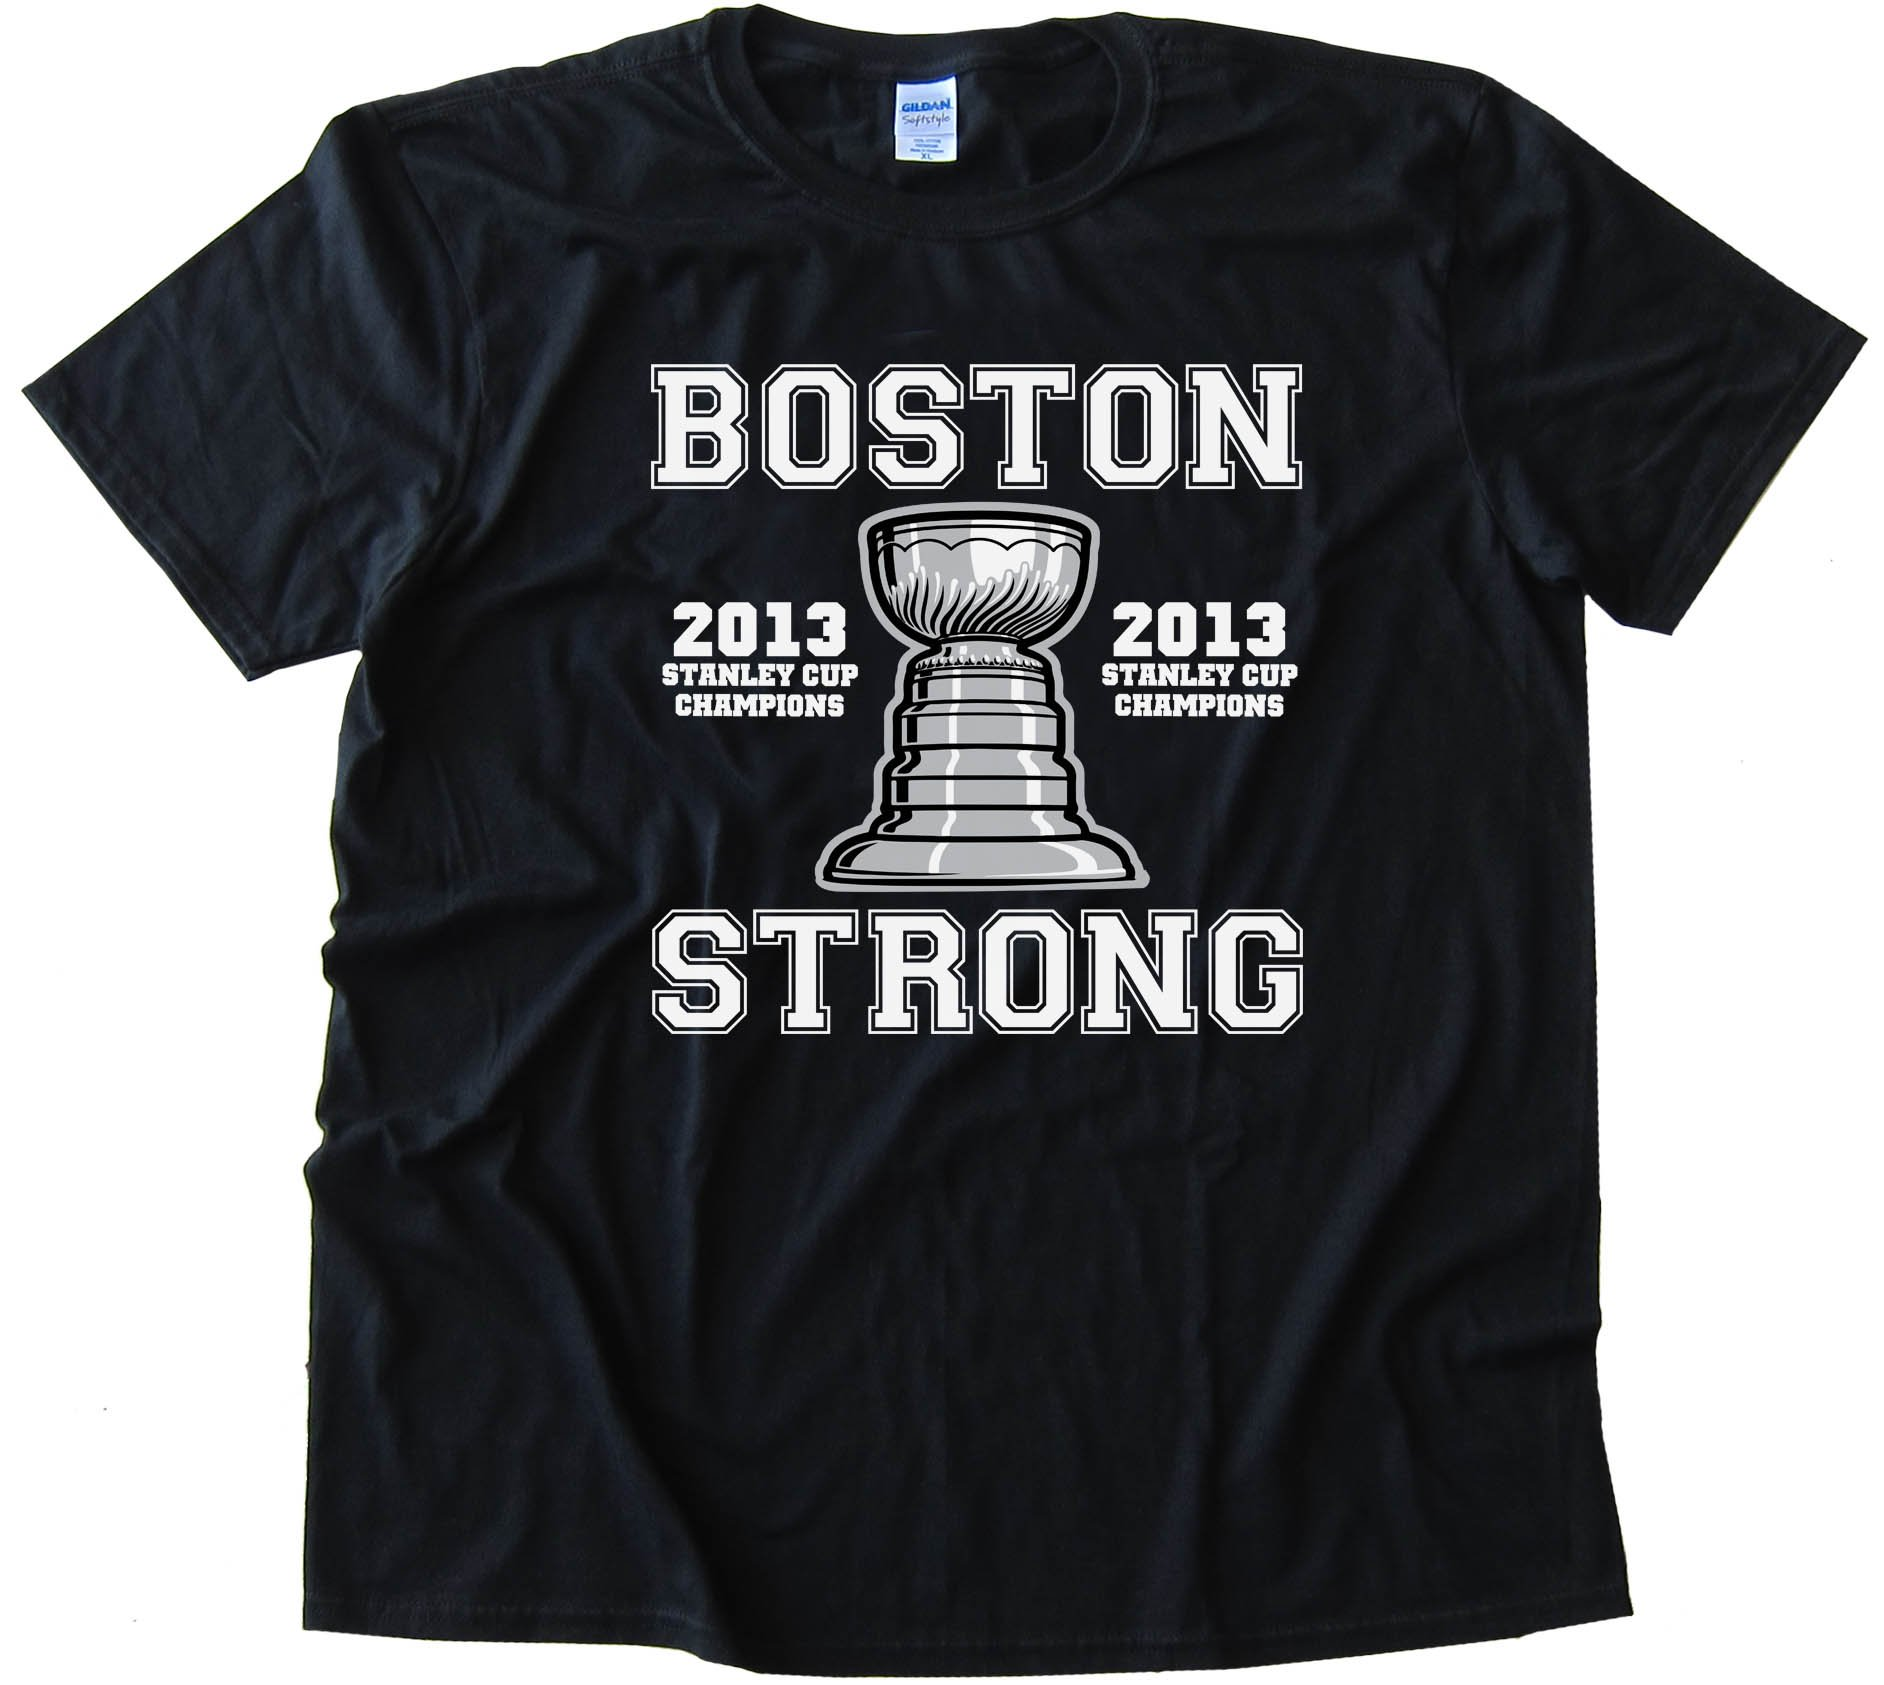 Boston Strong 2013 Stanley Cup Champions - Boston Bruins - Tee Shirt